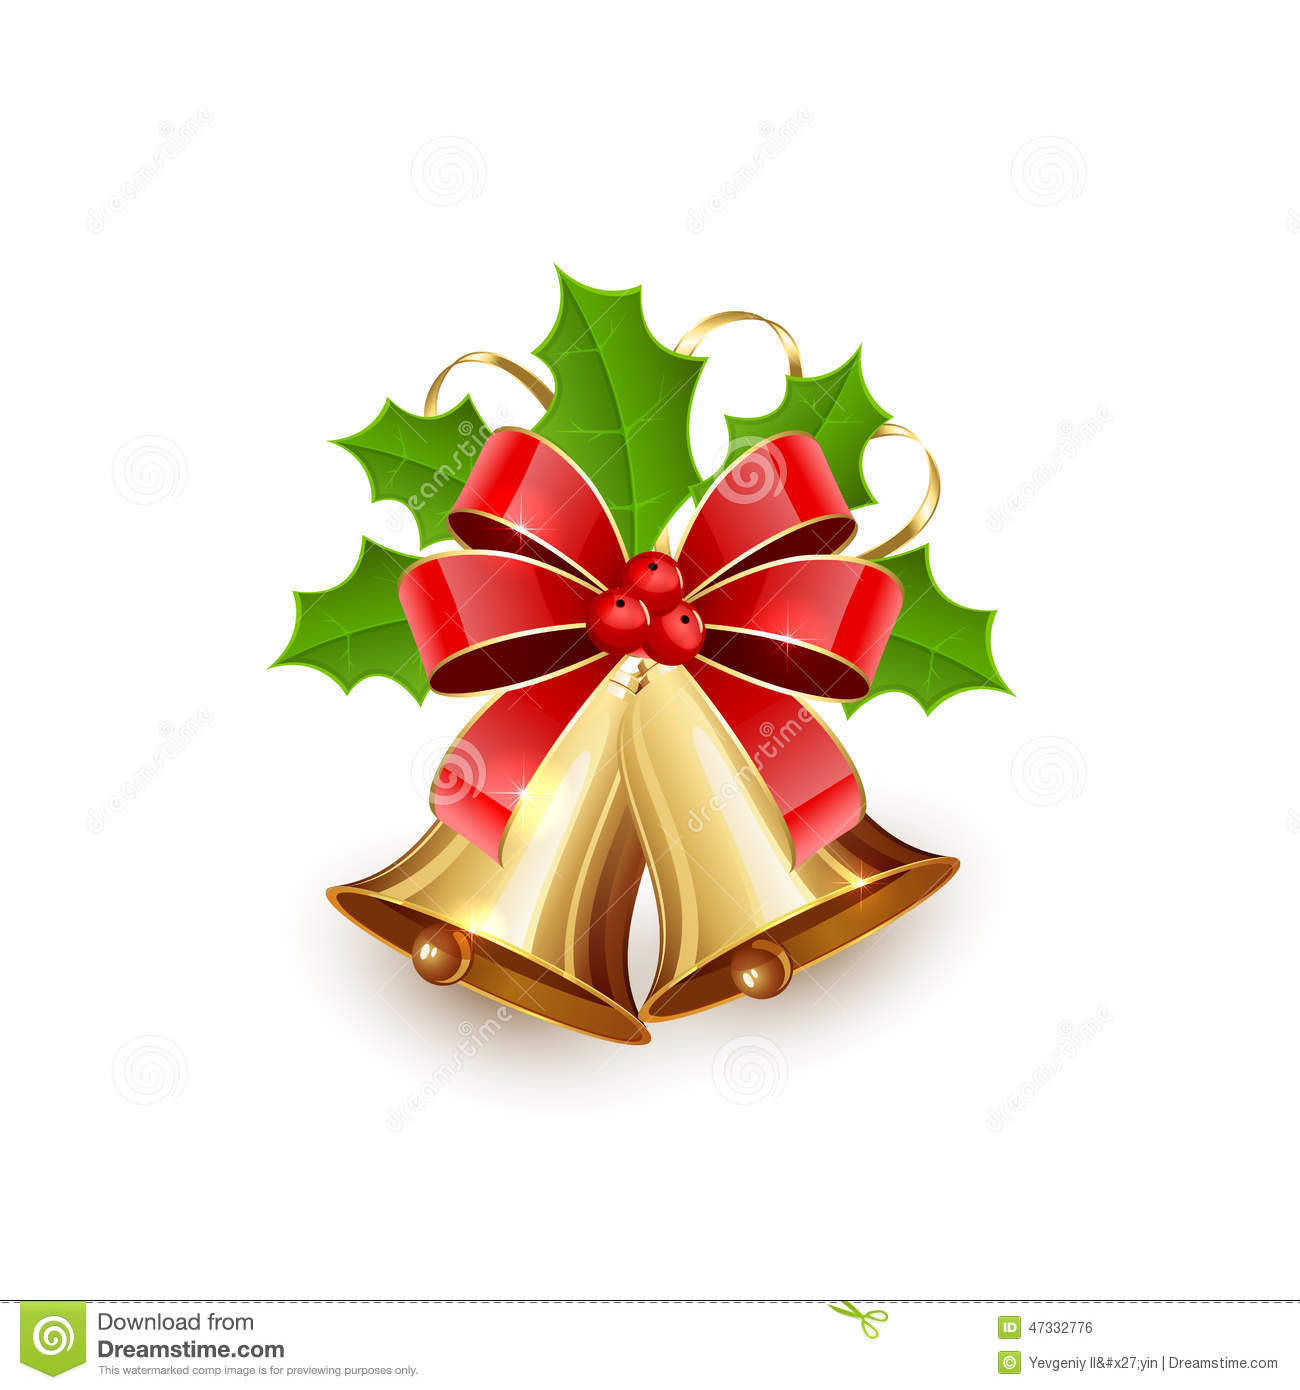 Christmas bells and holly berries stock vector image for Holl image